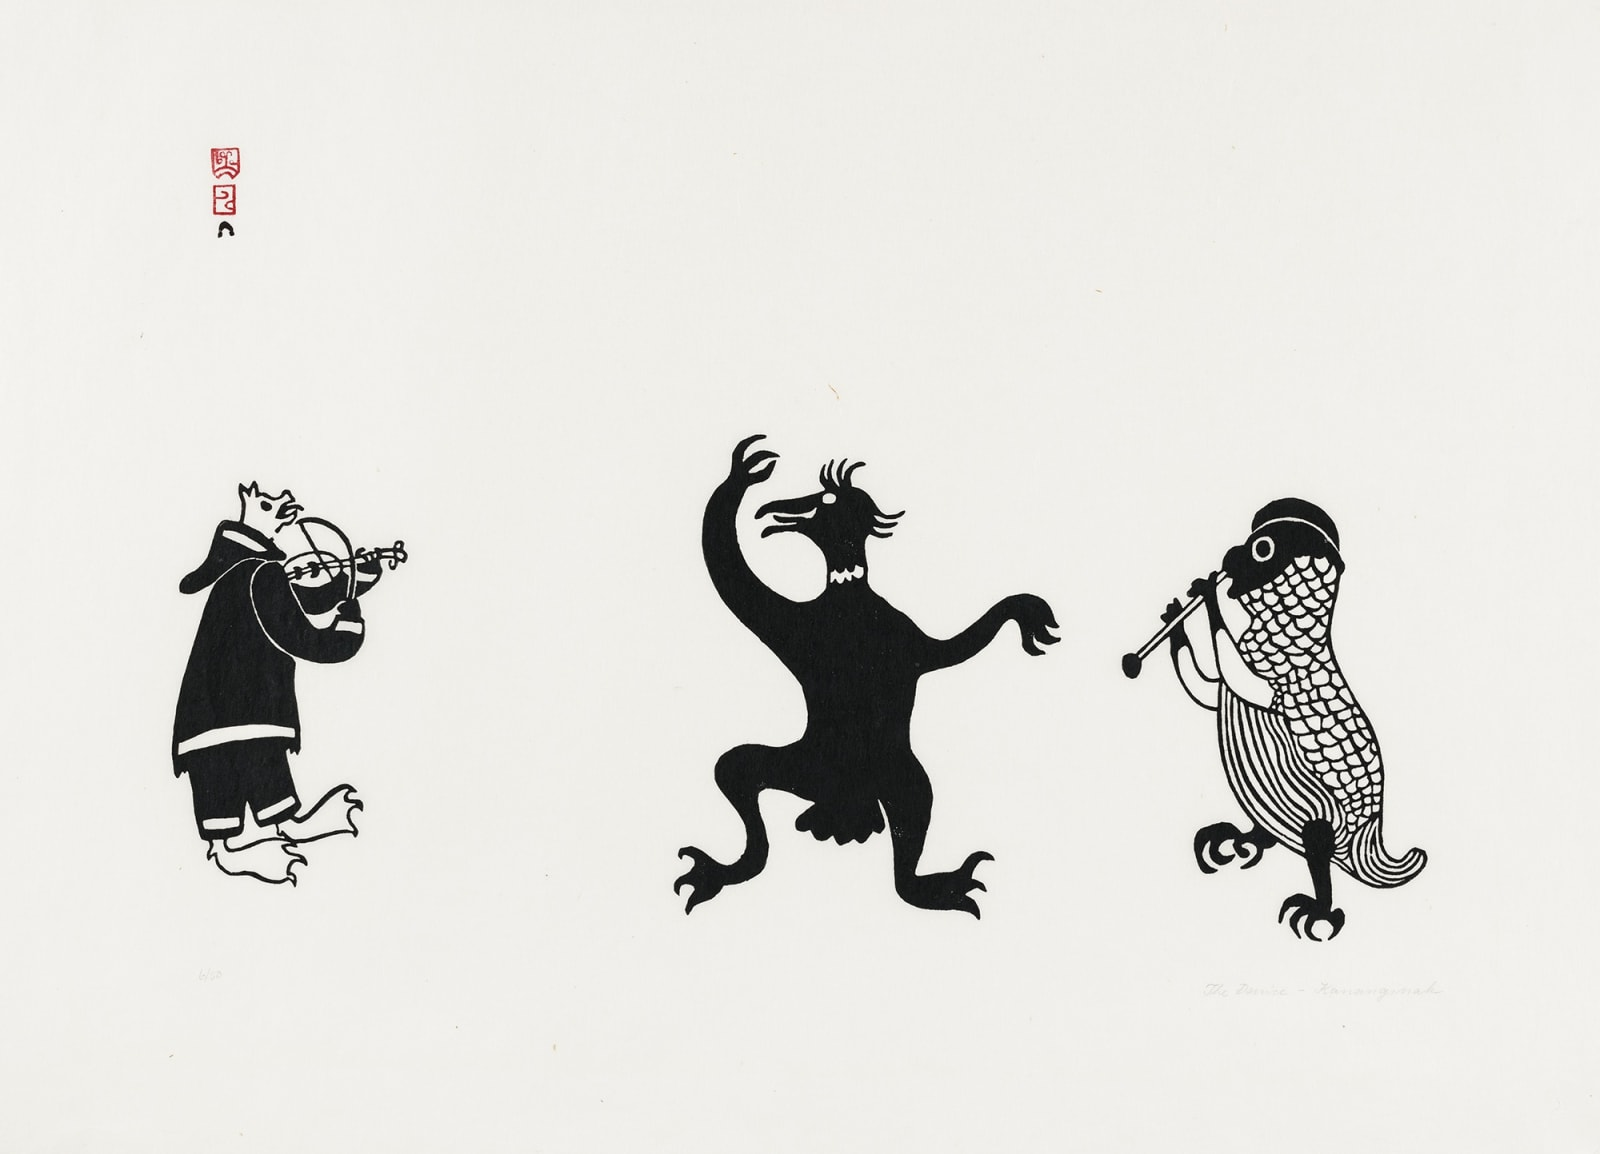 Lot 105 KANANGINAK POOTOOGOOK, R.C.A. (1935-2010) m., KINNGAIT (CAPE DORSET) The Dance (The Fiddle Player), c. 1960-61 (commissioned print, possibly for Imperial Oil) stonecut, 23.5 x 30 in (59.7 x 76.2 cm) Estimate: $900— $1,200 Price realized: $840